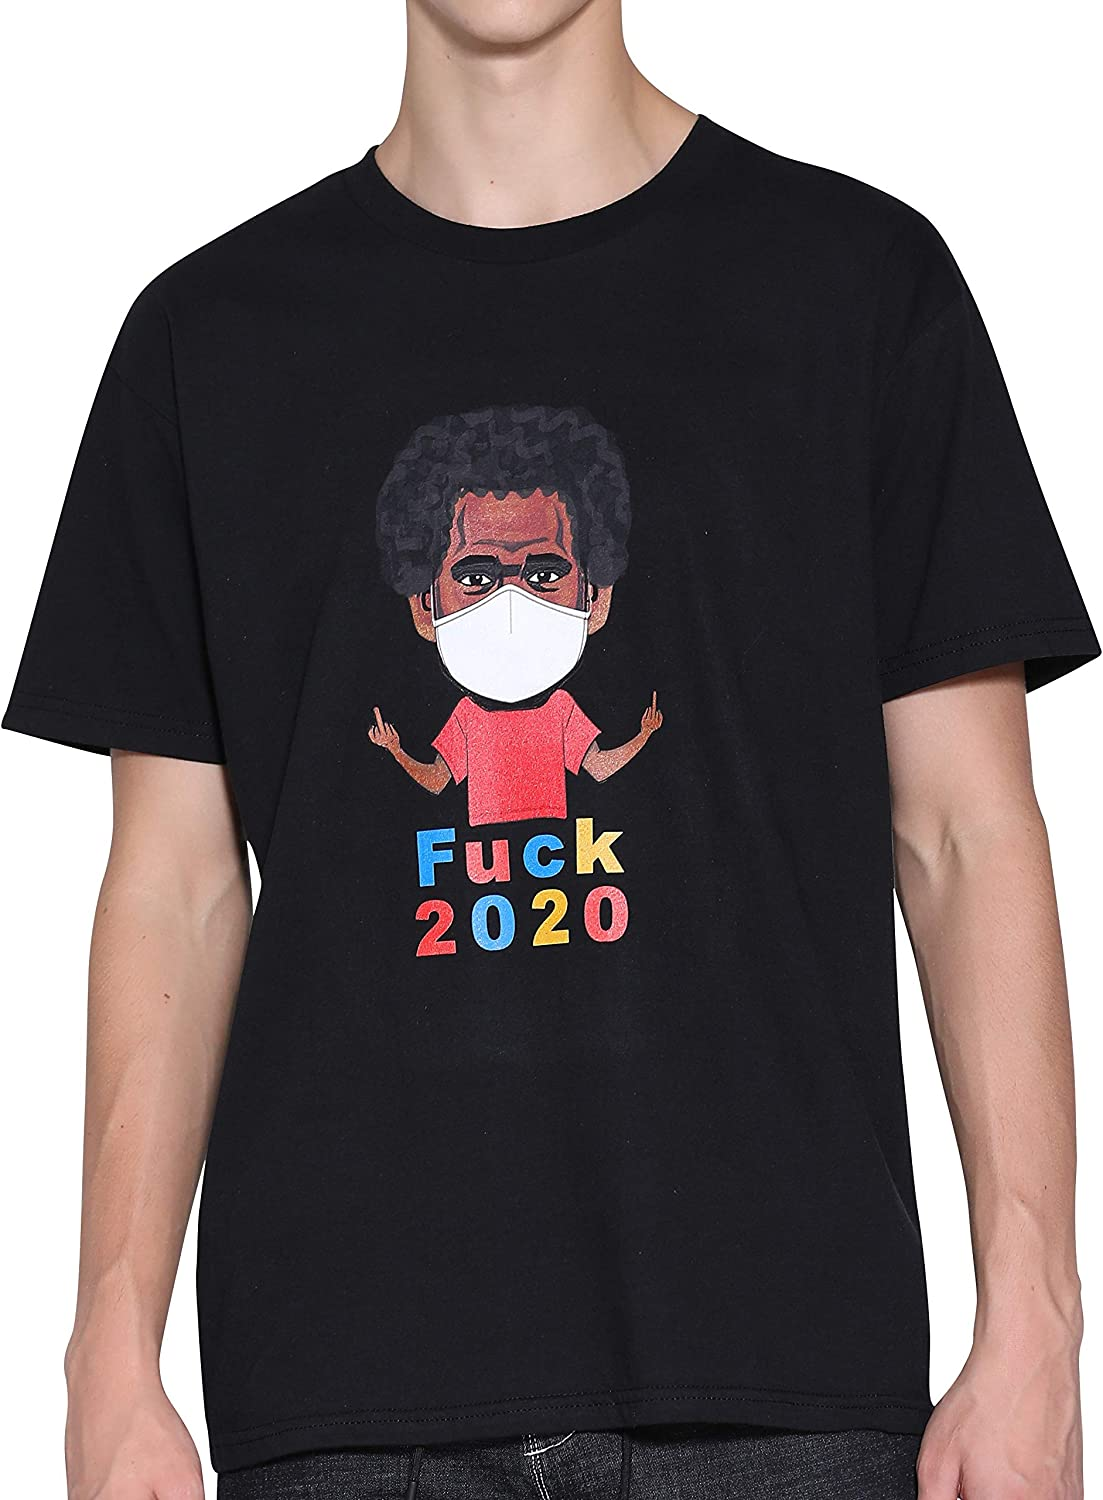 Tricle Fuck 2020 Funny Graphic T Shirt For Men Cartoon Tees Short Sleeve Pure Cotton Mens T Shirts Tops For Boys Amazon Com